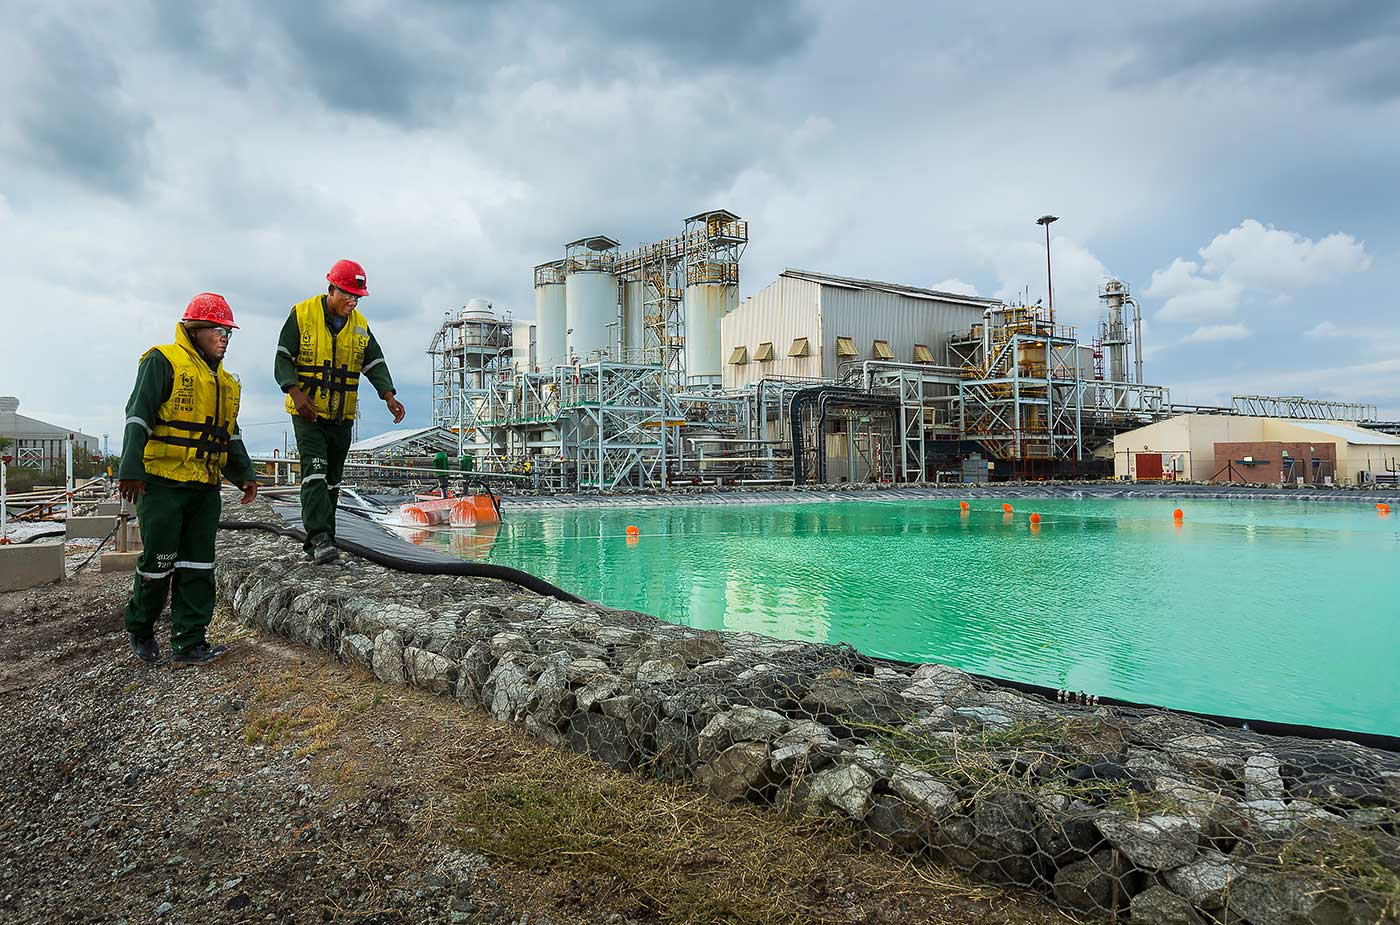 Sulphide pond at base metal refinery by professional photographer Geoff Brown